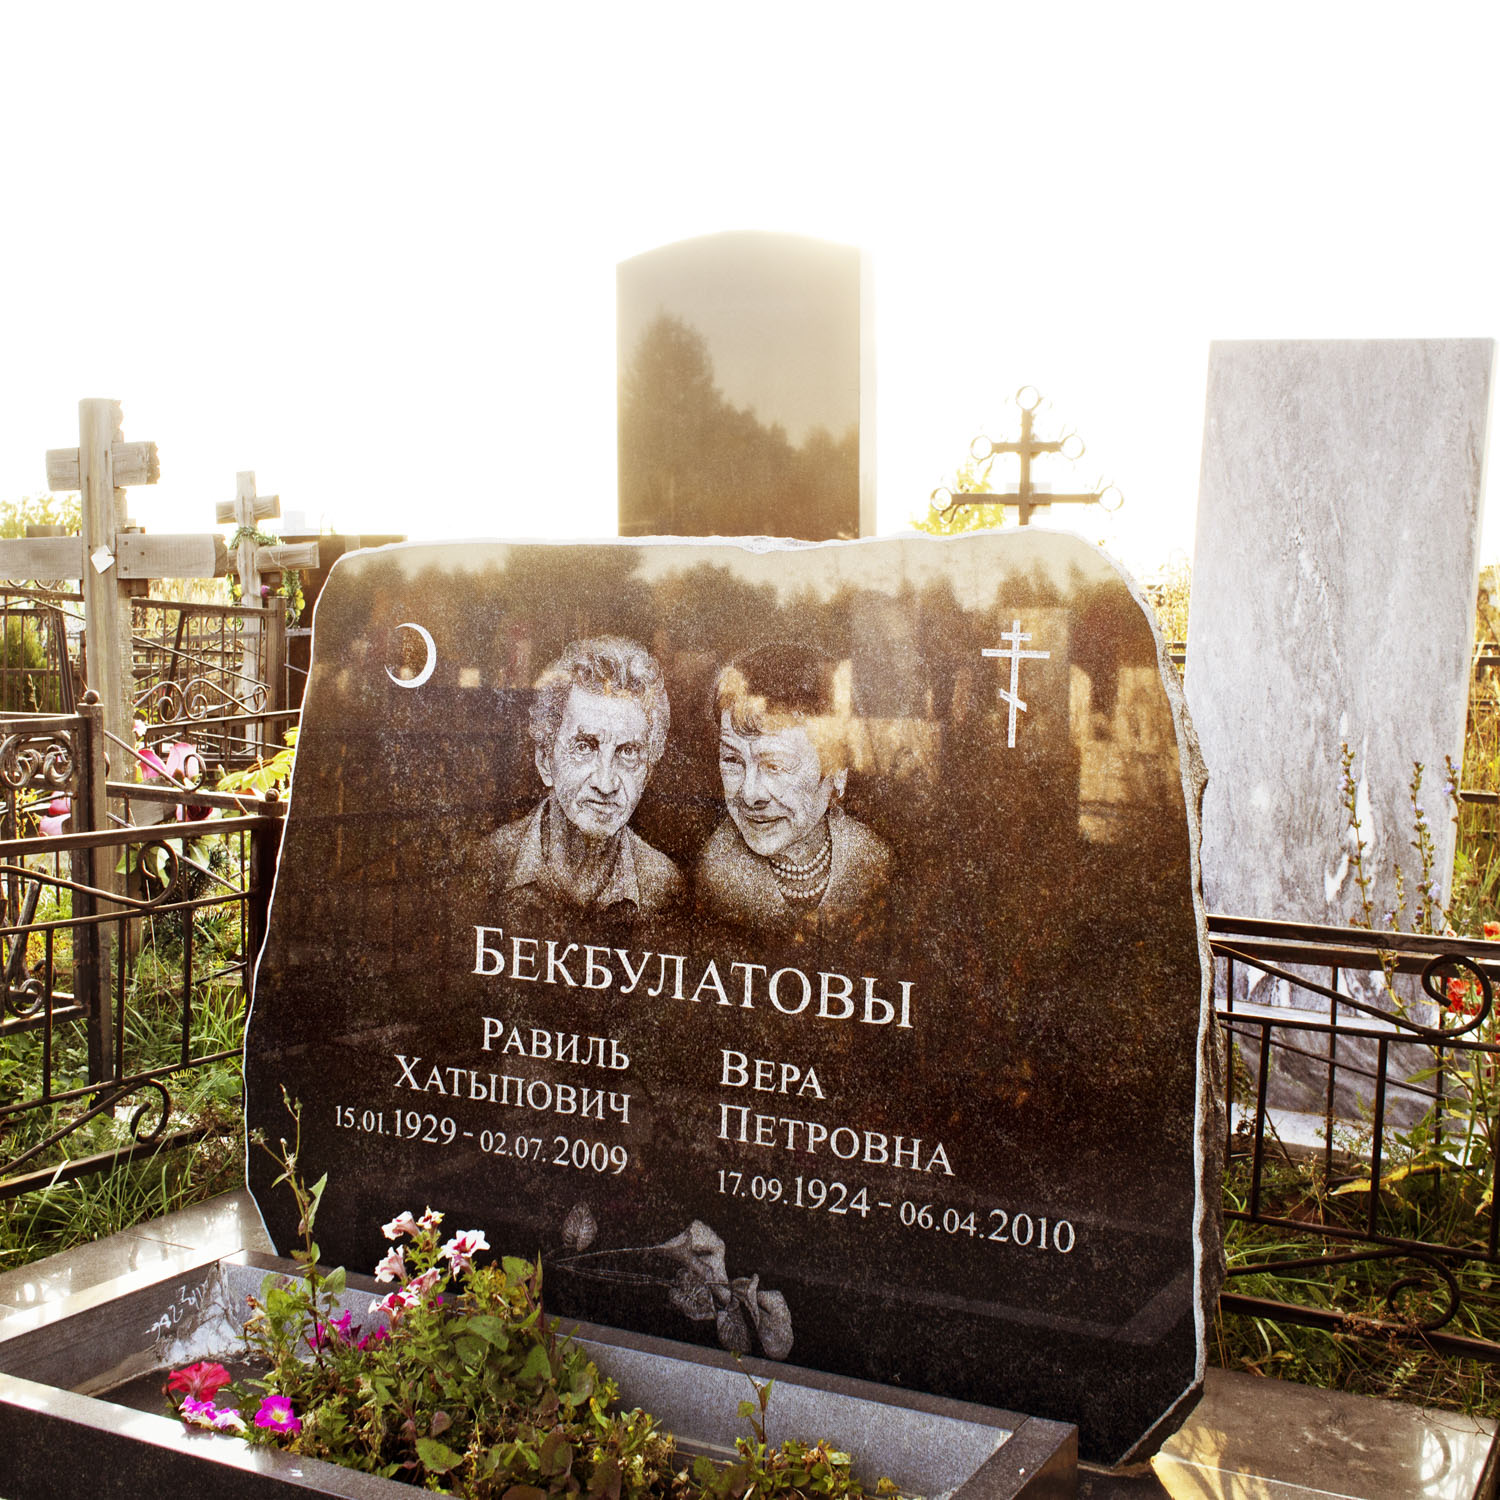 Samosyrodskowo-Cemetery in Kazan: Christians, Muslims and Jews are buried next to and with each other at this cemetery.